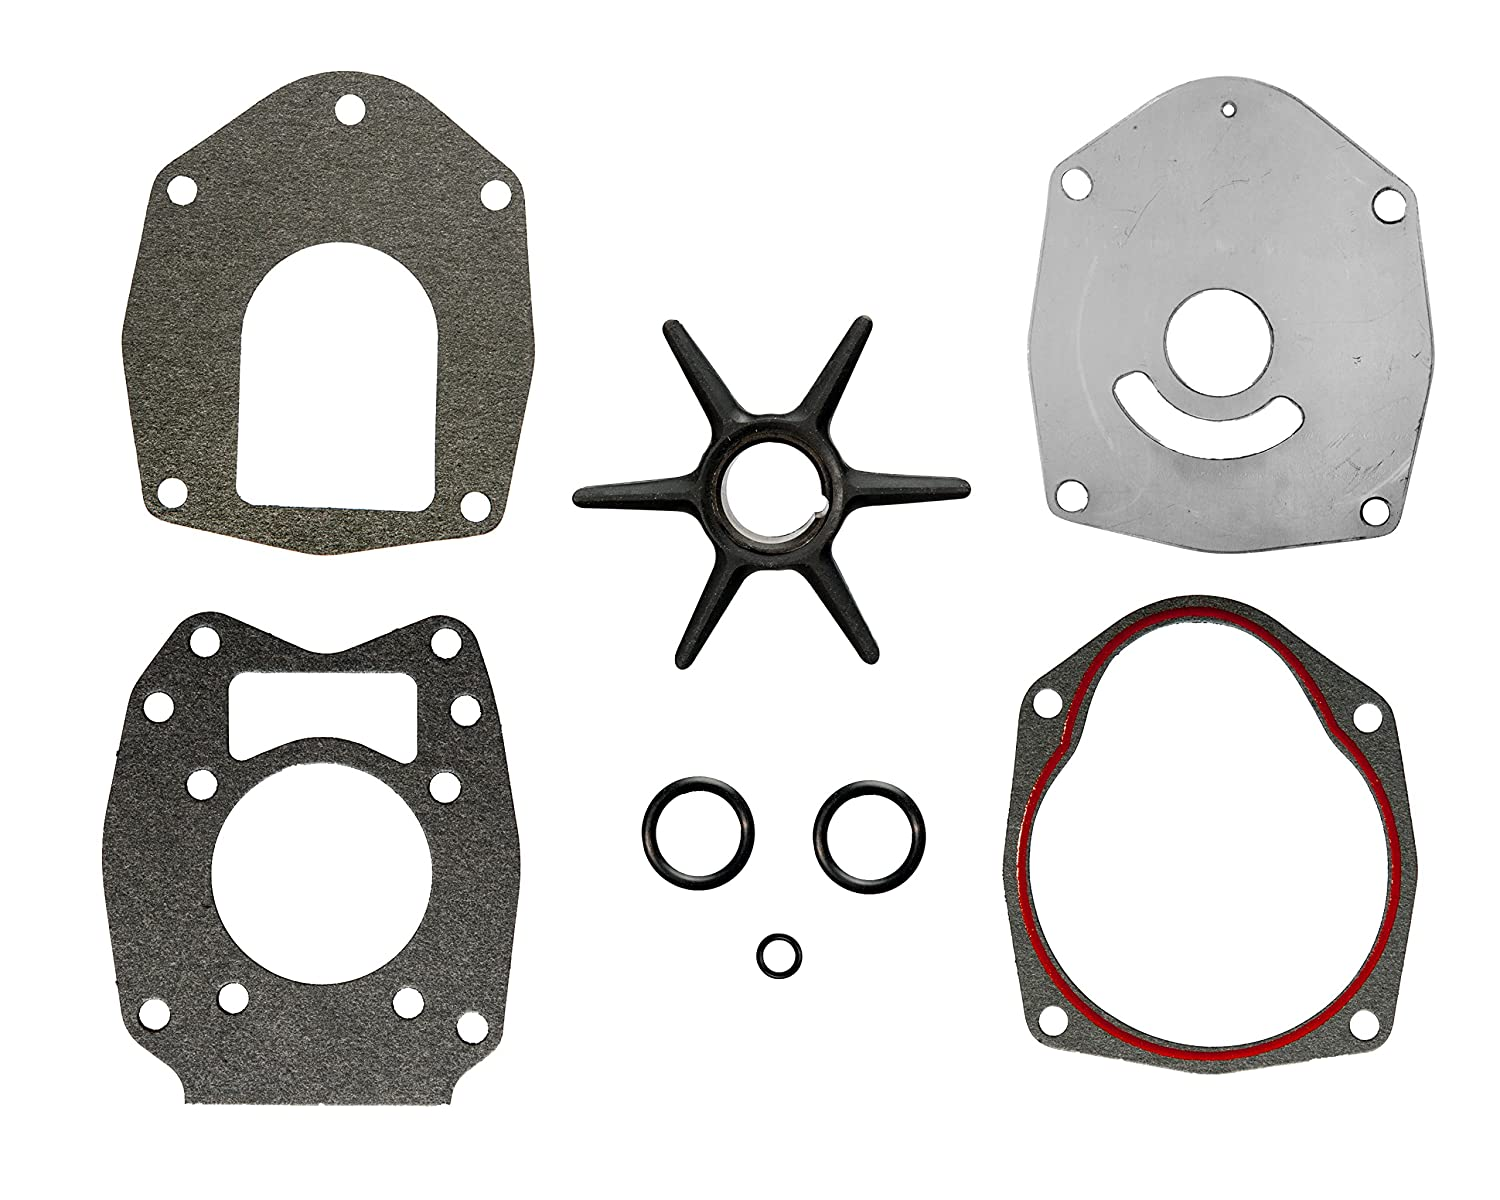 New WATER PUMP IMPELLER KIT fits 18-2565 18-2564 /& 47-8M0100526 Outboard Engines